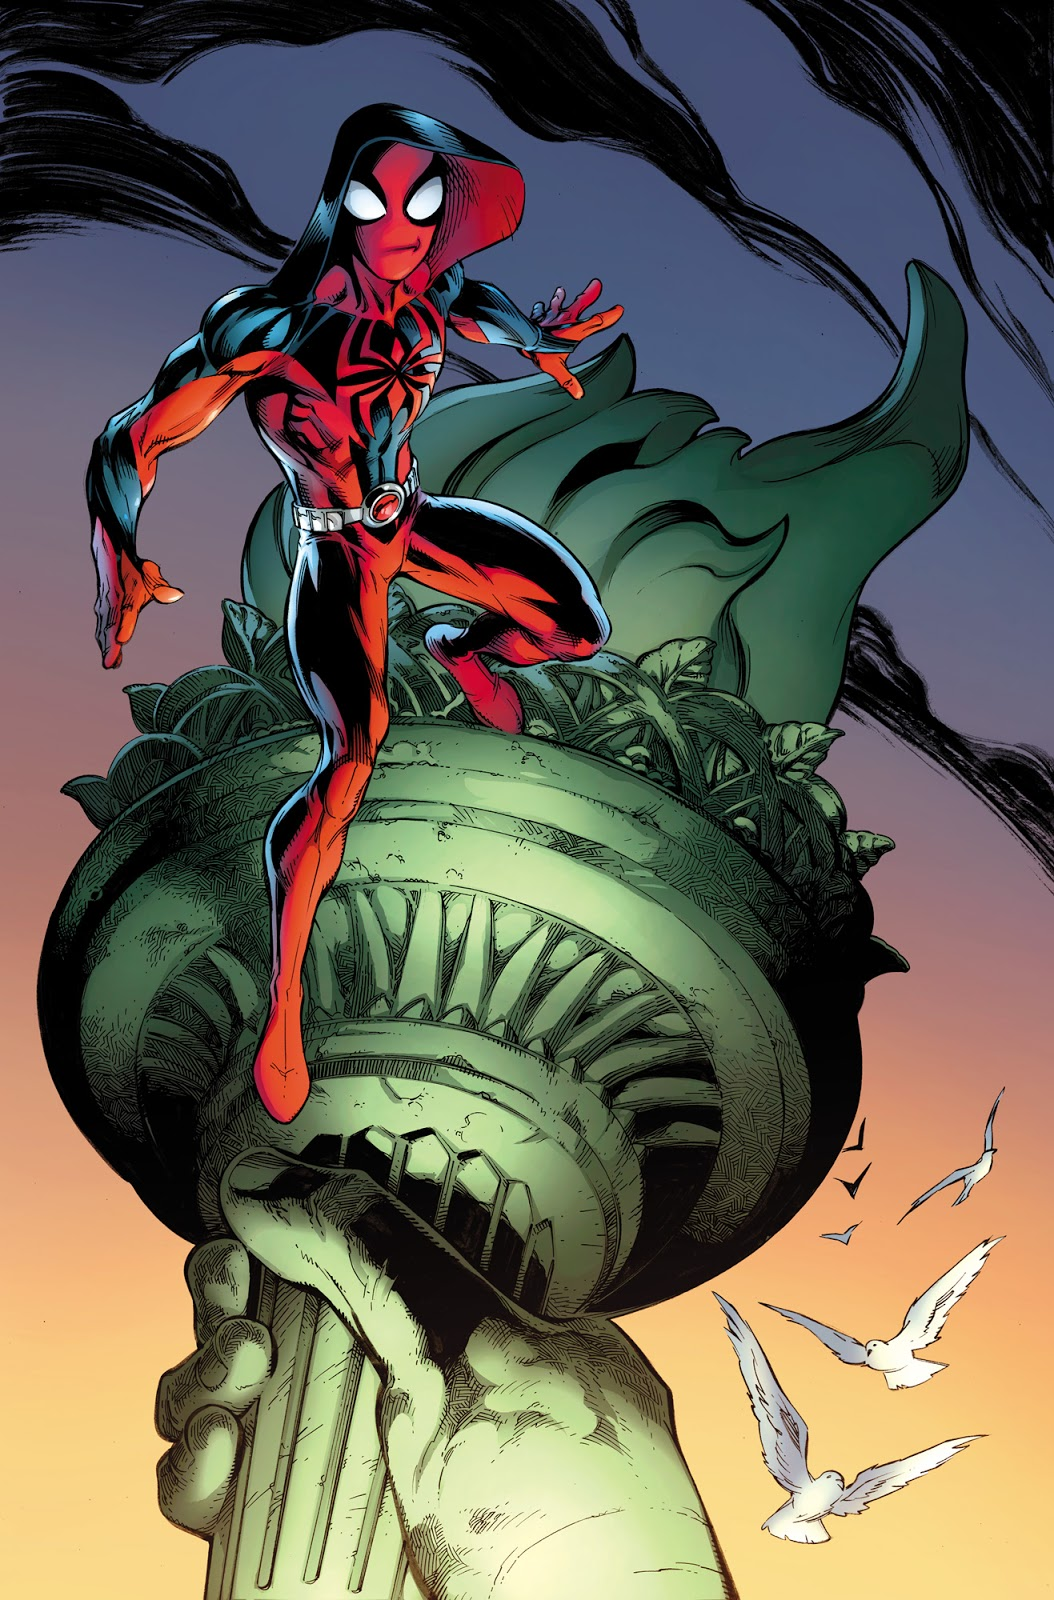 THE SCARLET SPIDER #1